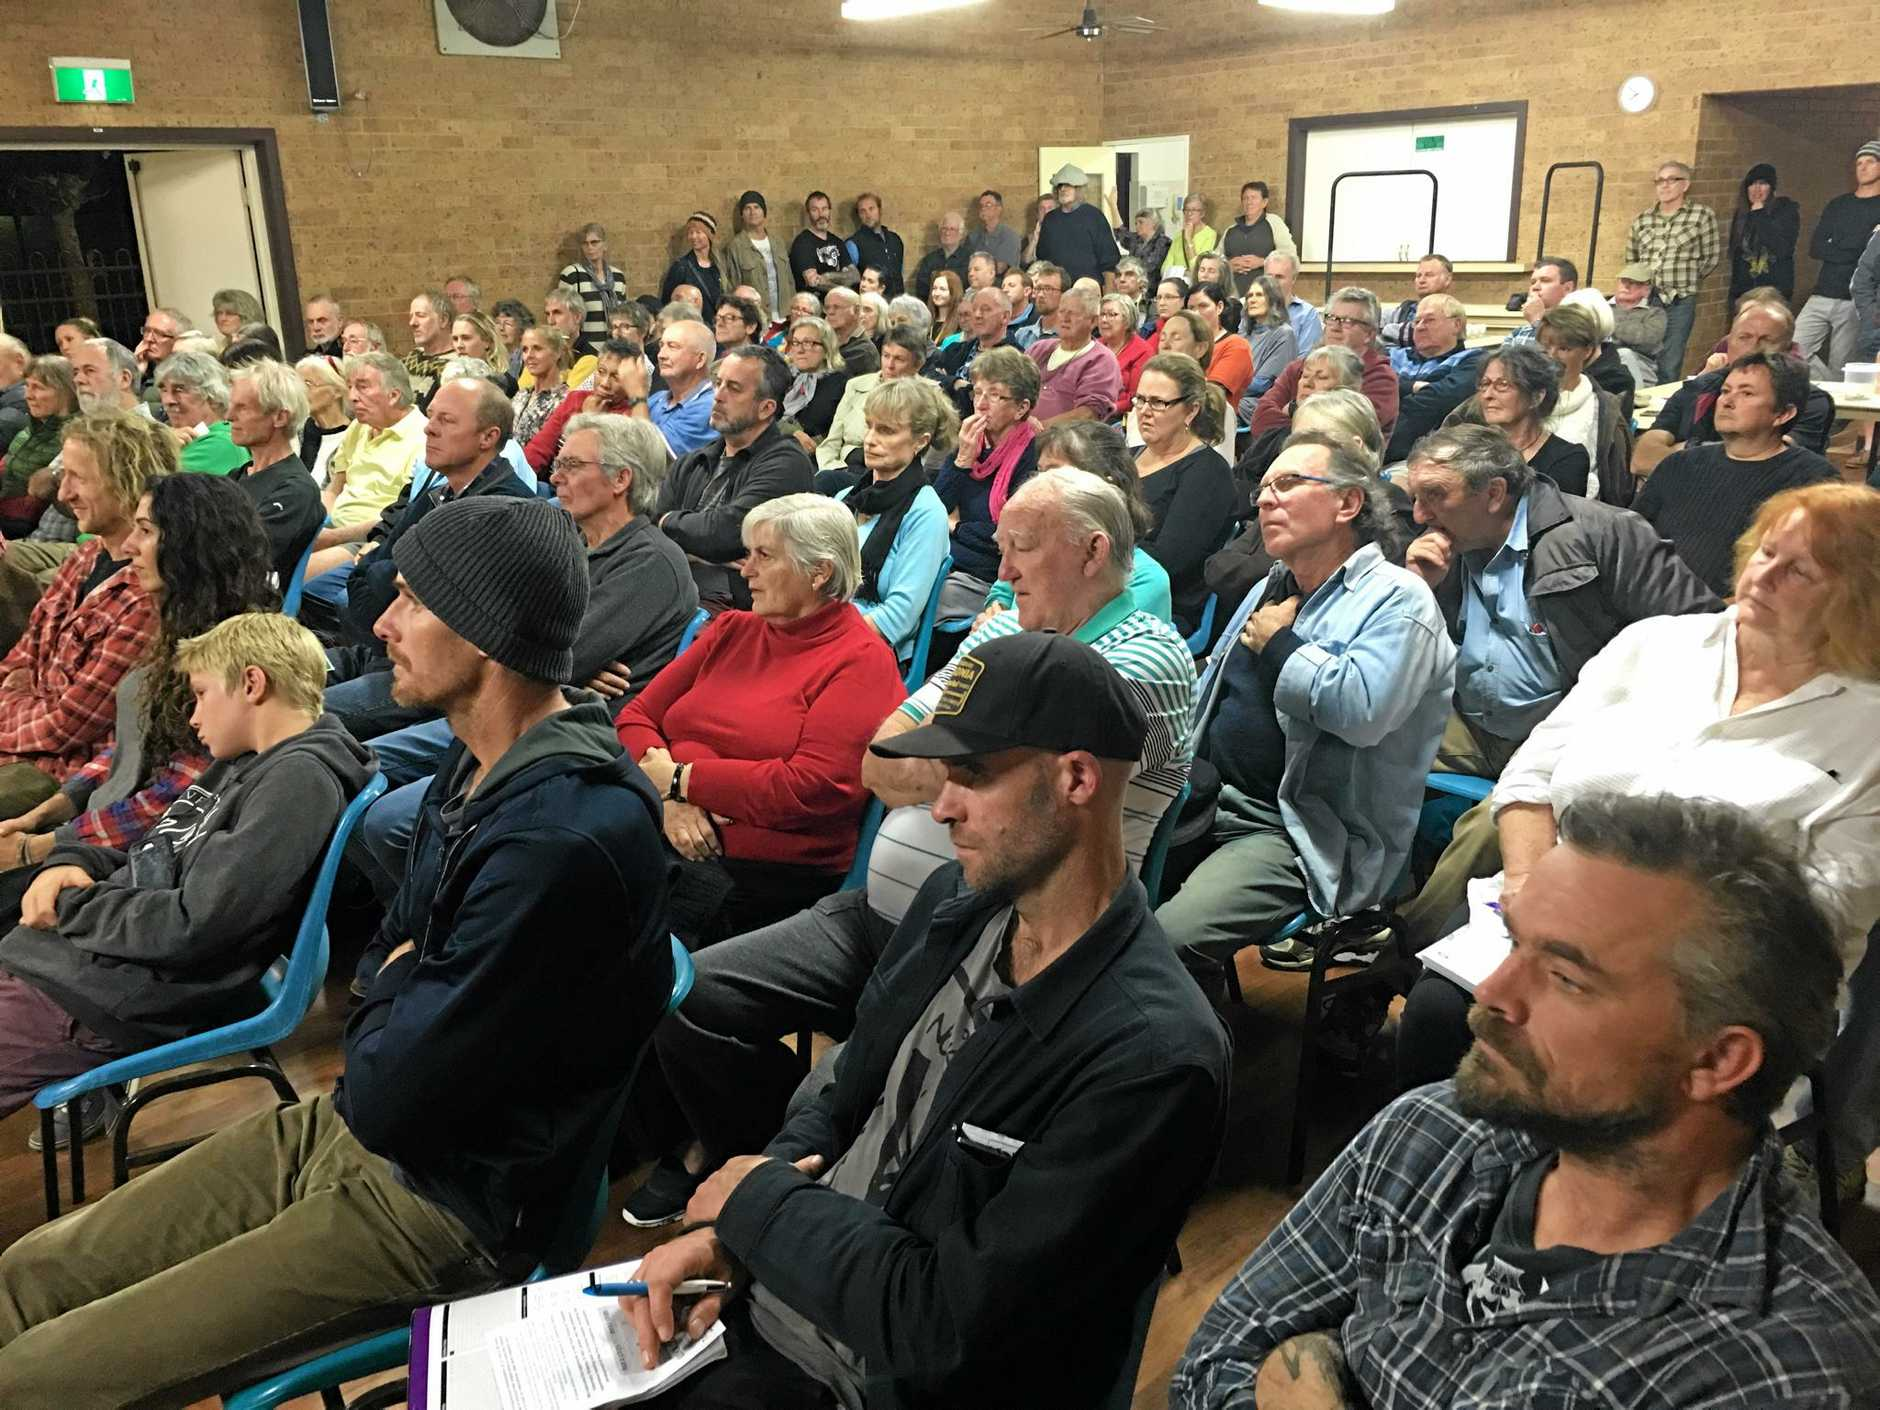 STORM OVER PORT: The crowd at the Iluka Community Hall meeting listens to concerns about plans for a major port development at Yamba.